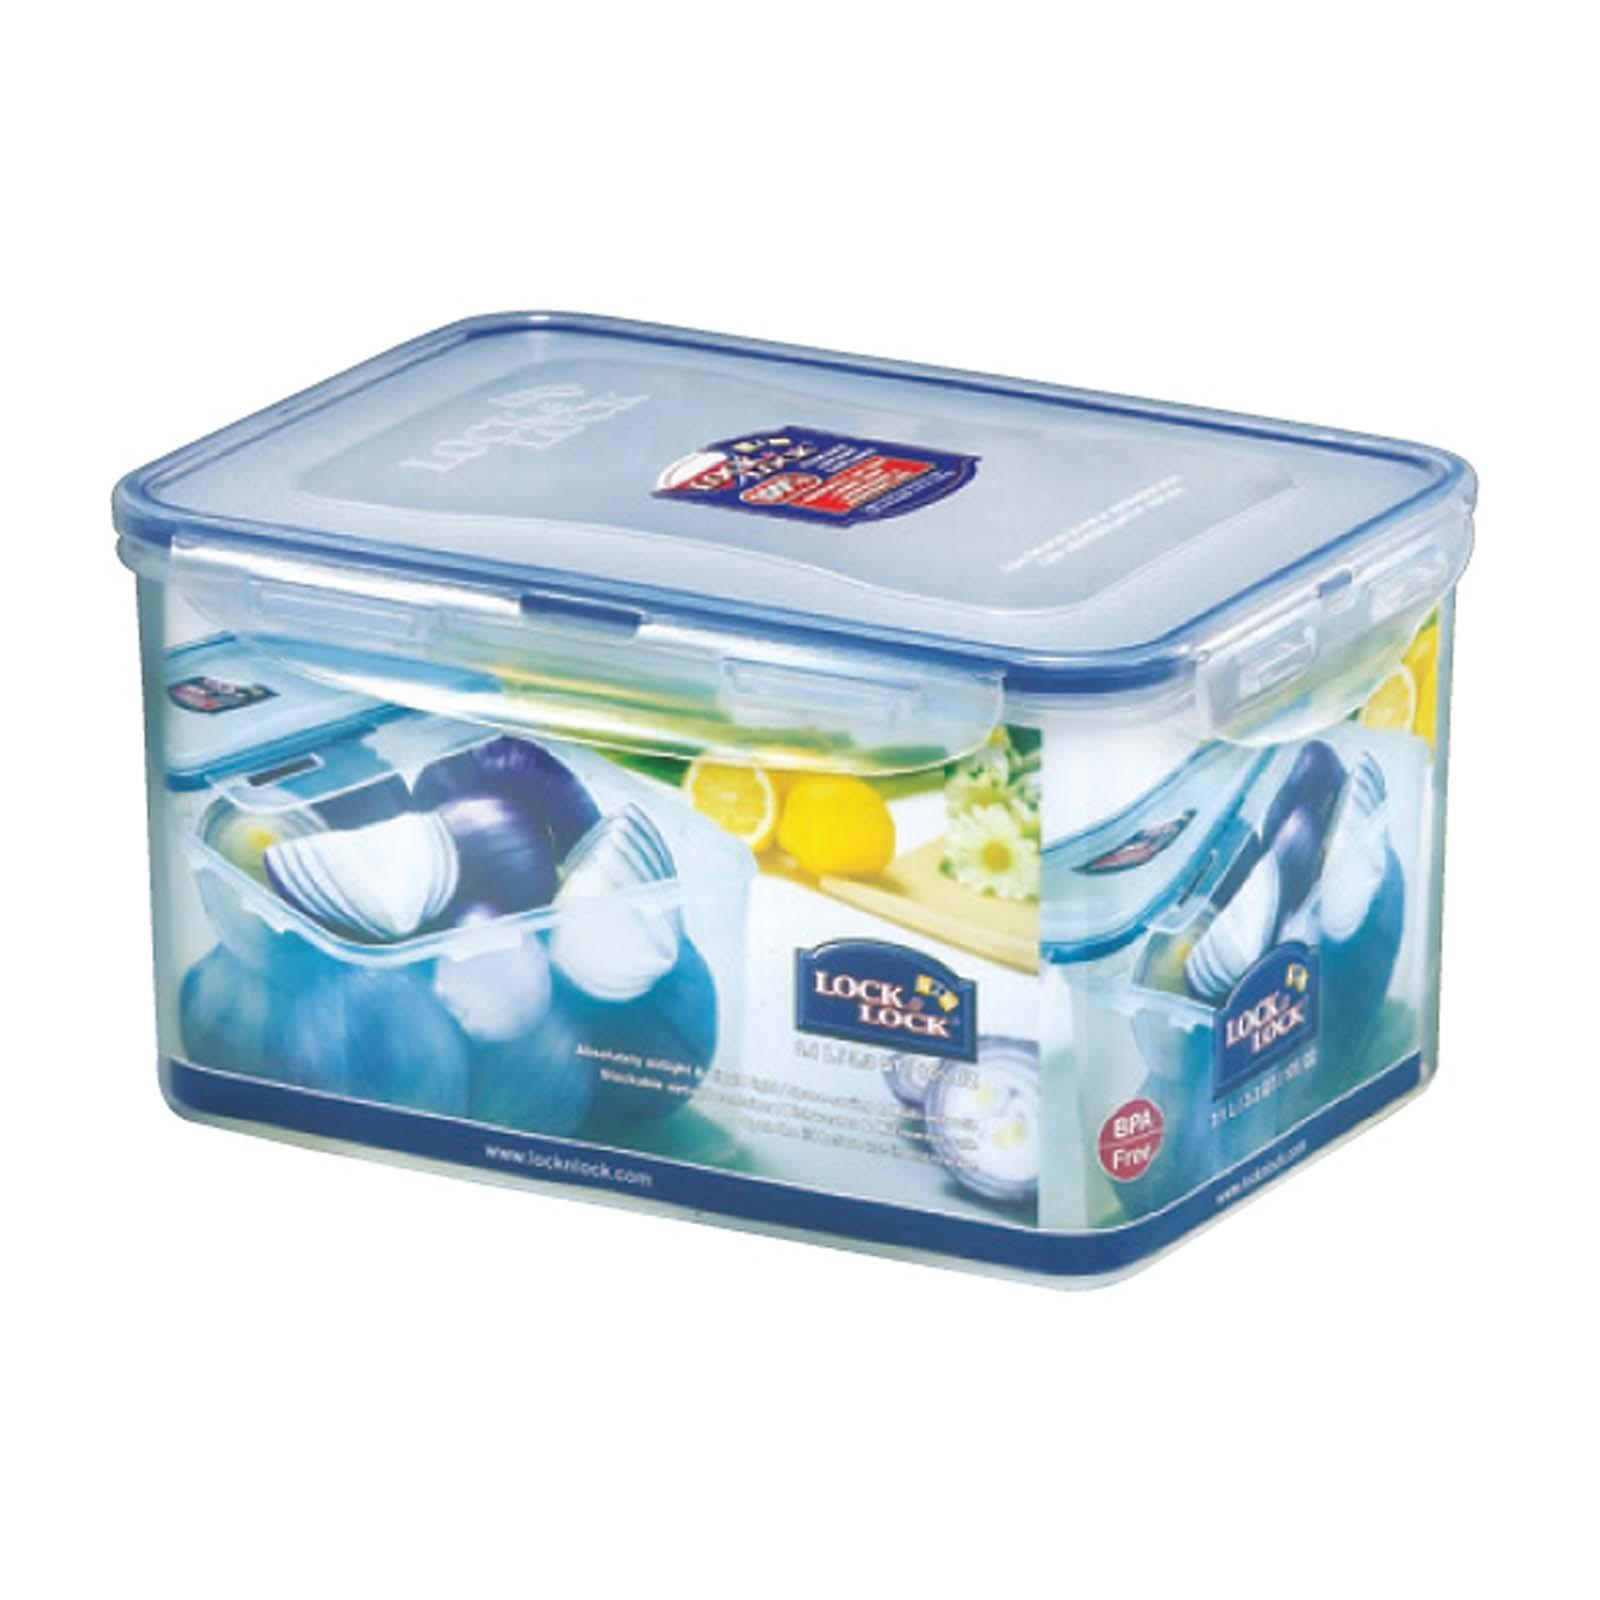 Lock and Lock Classic Food Container 3.1L